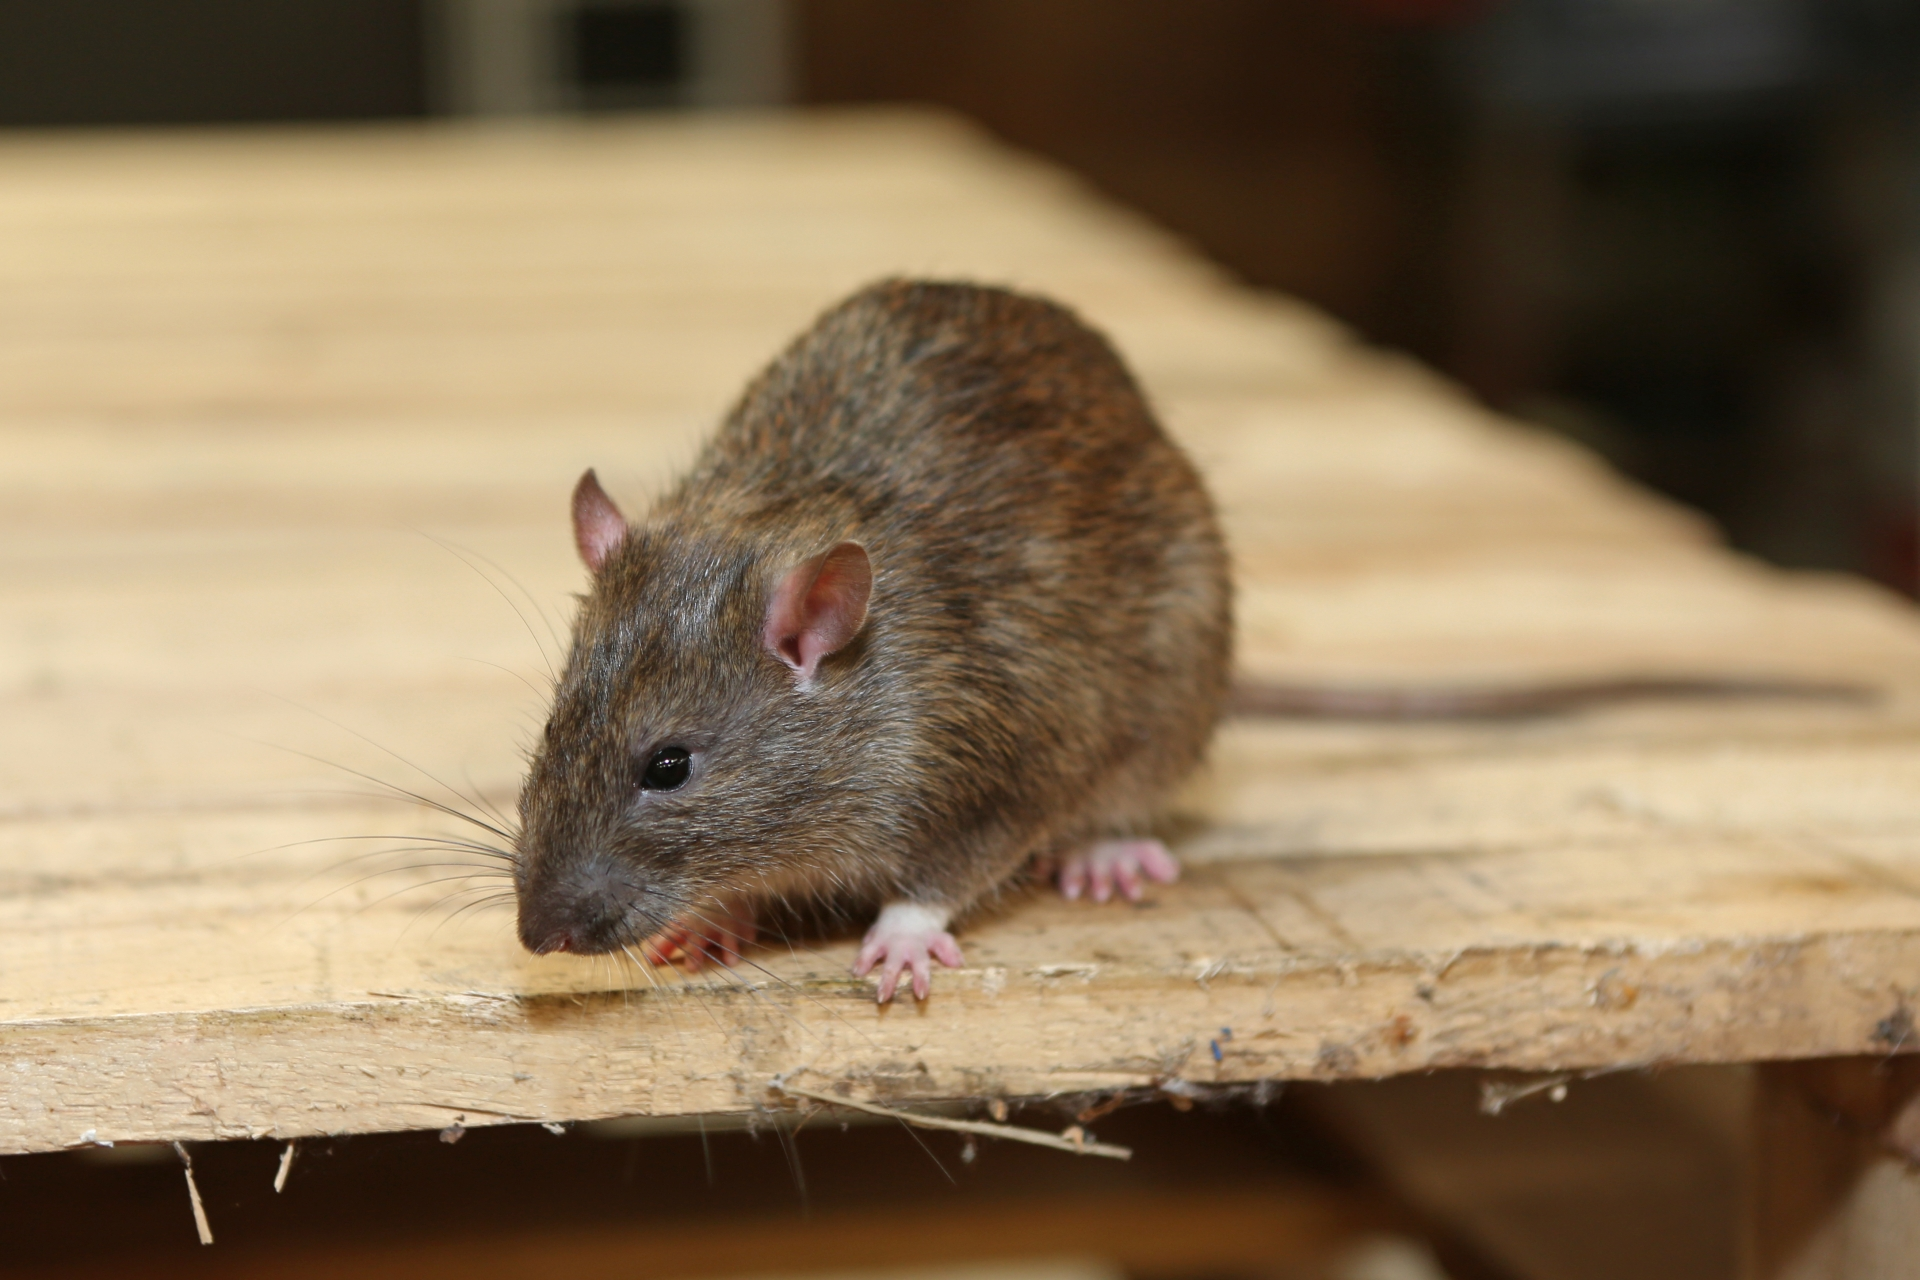 Rat Infestation, Pest Control in Garston, Leavesden, WD25. Call Now 020 8166 9746